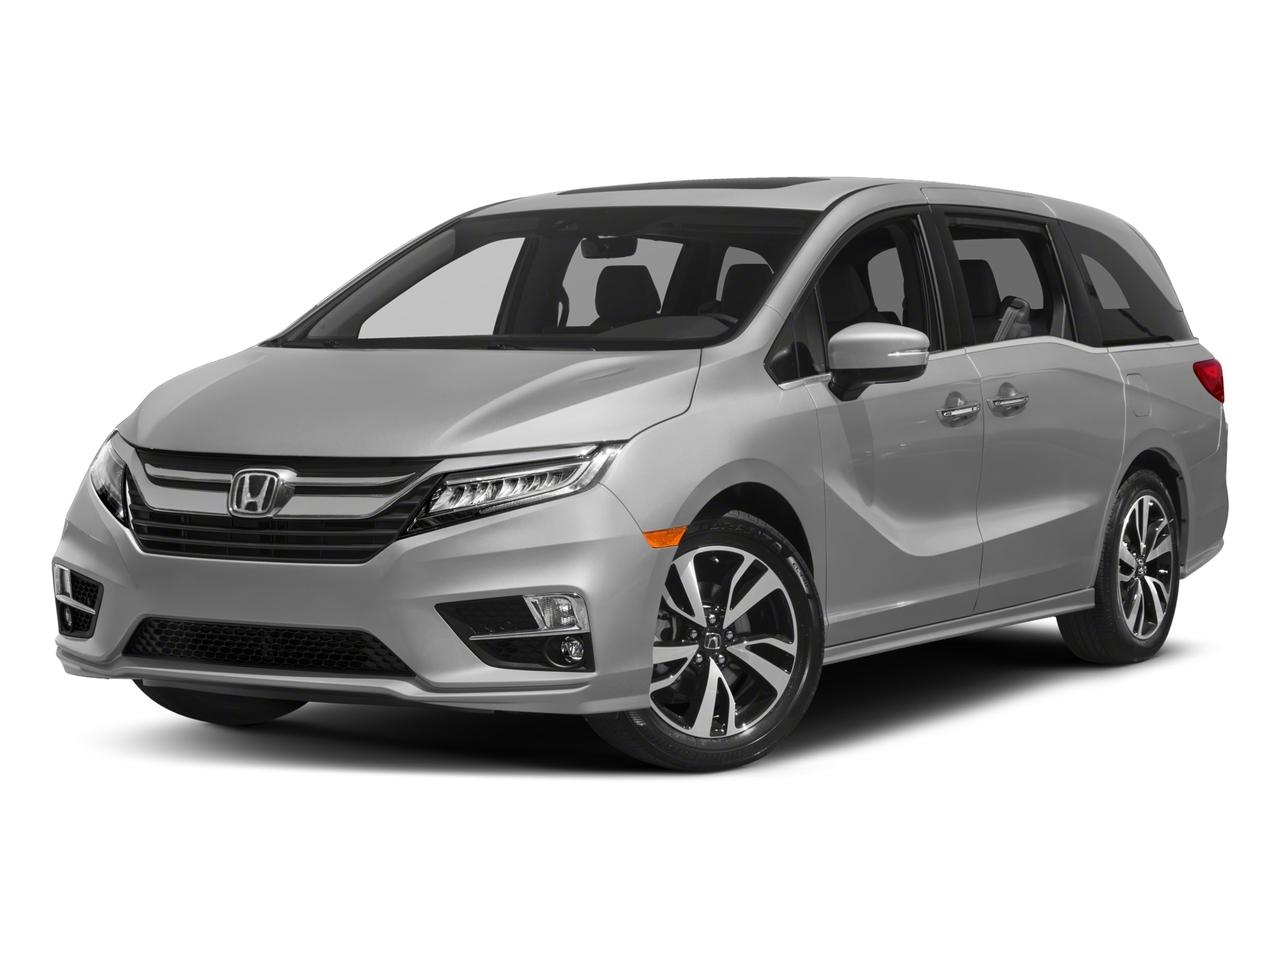 2018 Honda Odyssey Vehicle Photo in Brockton, MA 02301